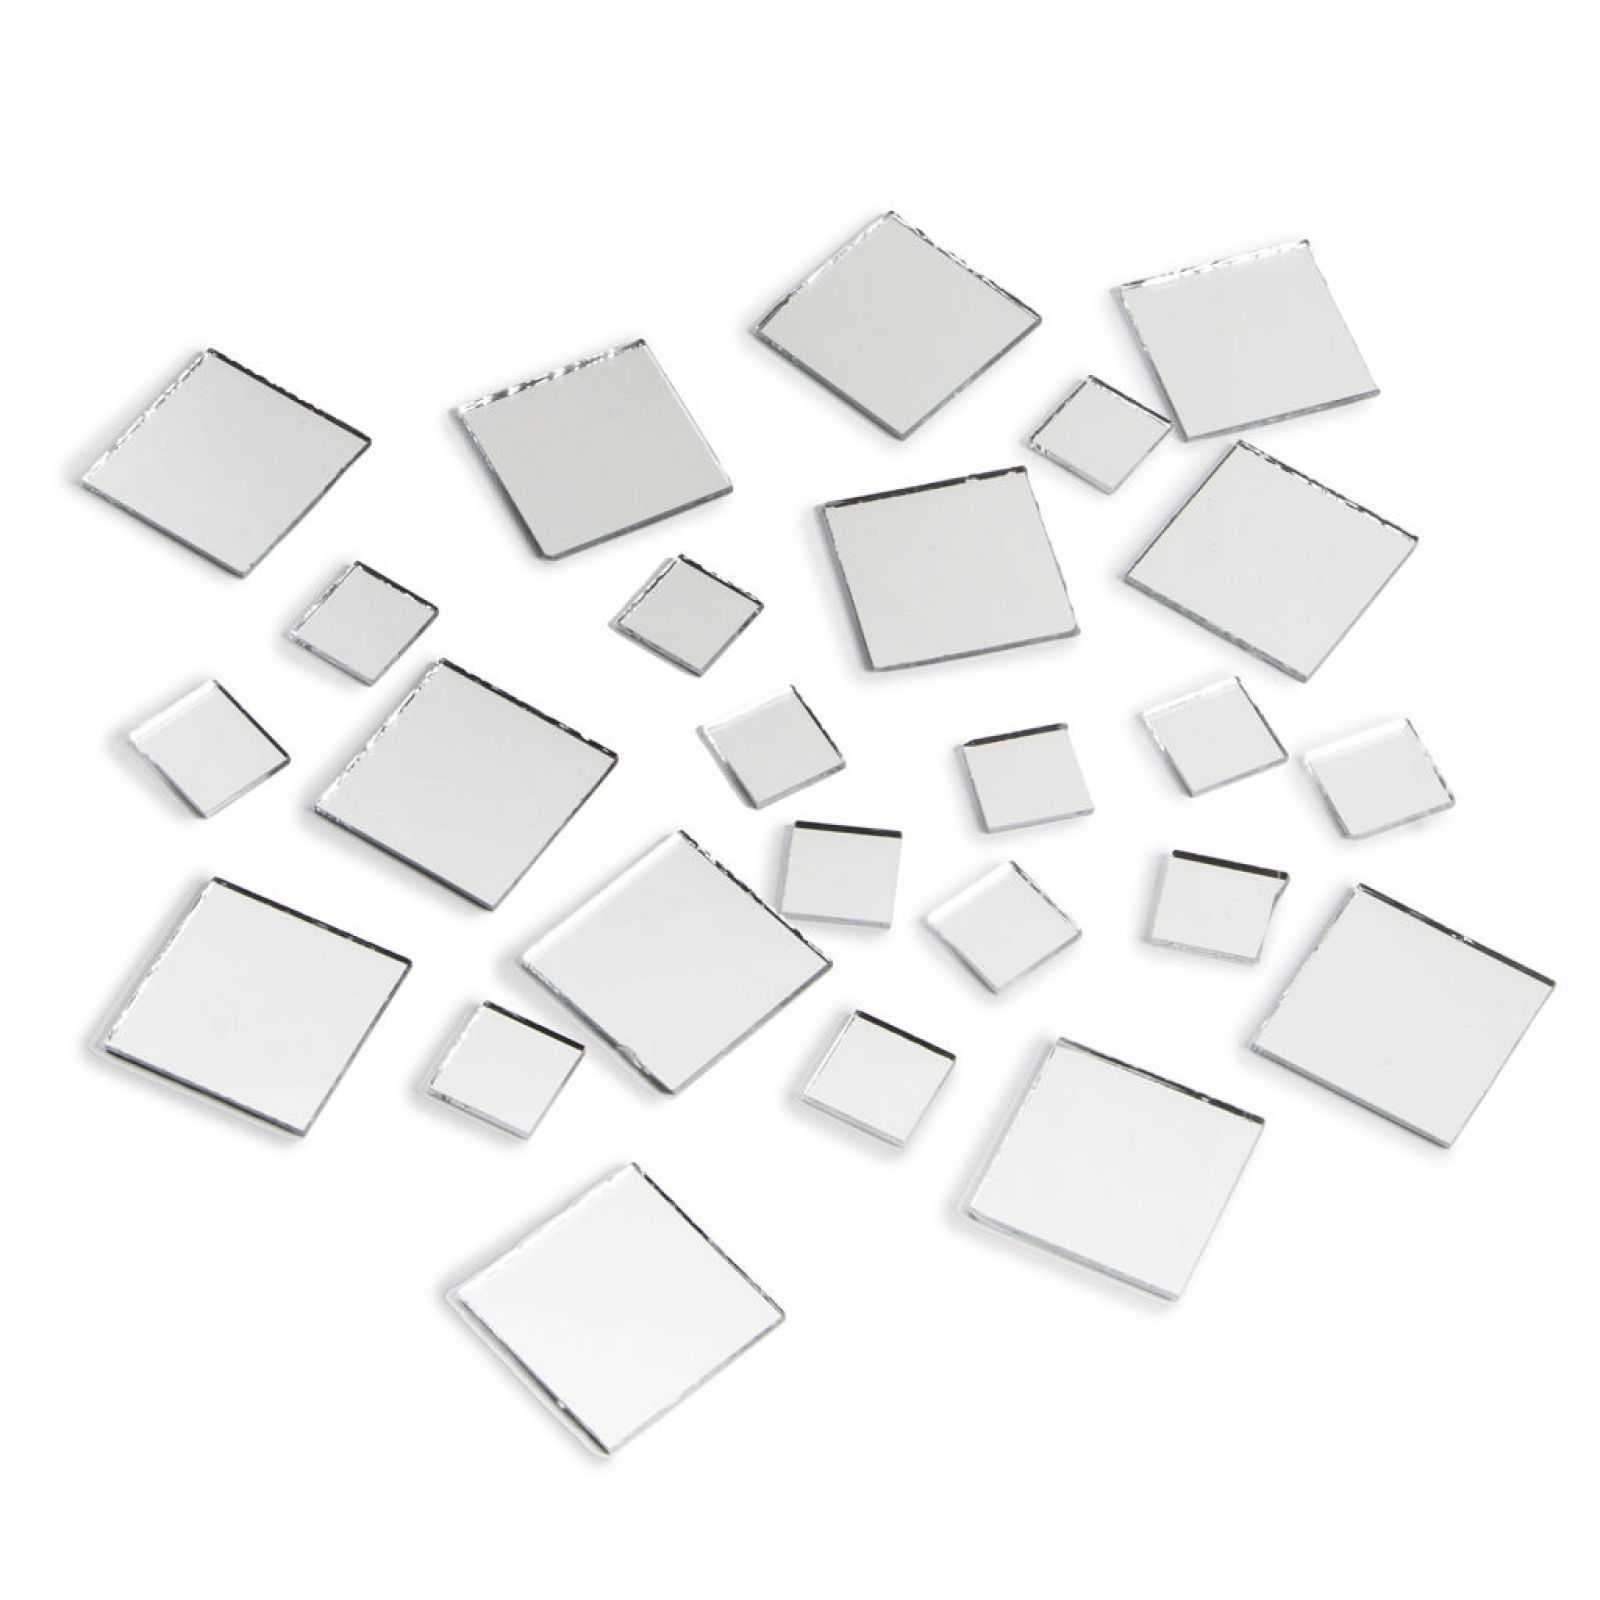 Square Mirrors Assortment By Artminds Square Mirror Arts And Crafts Arts And Crafts House